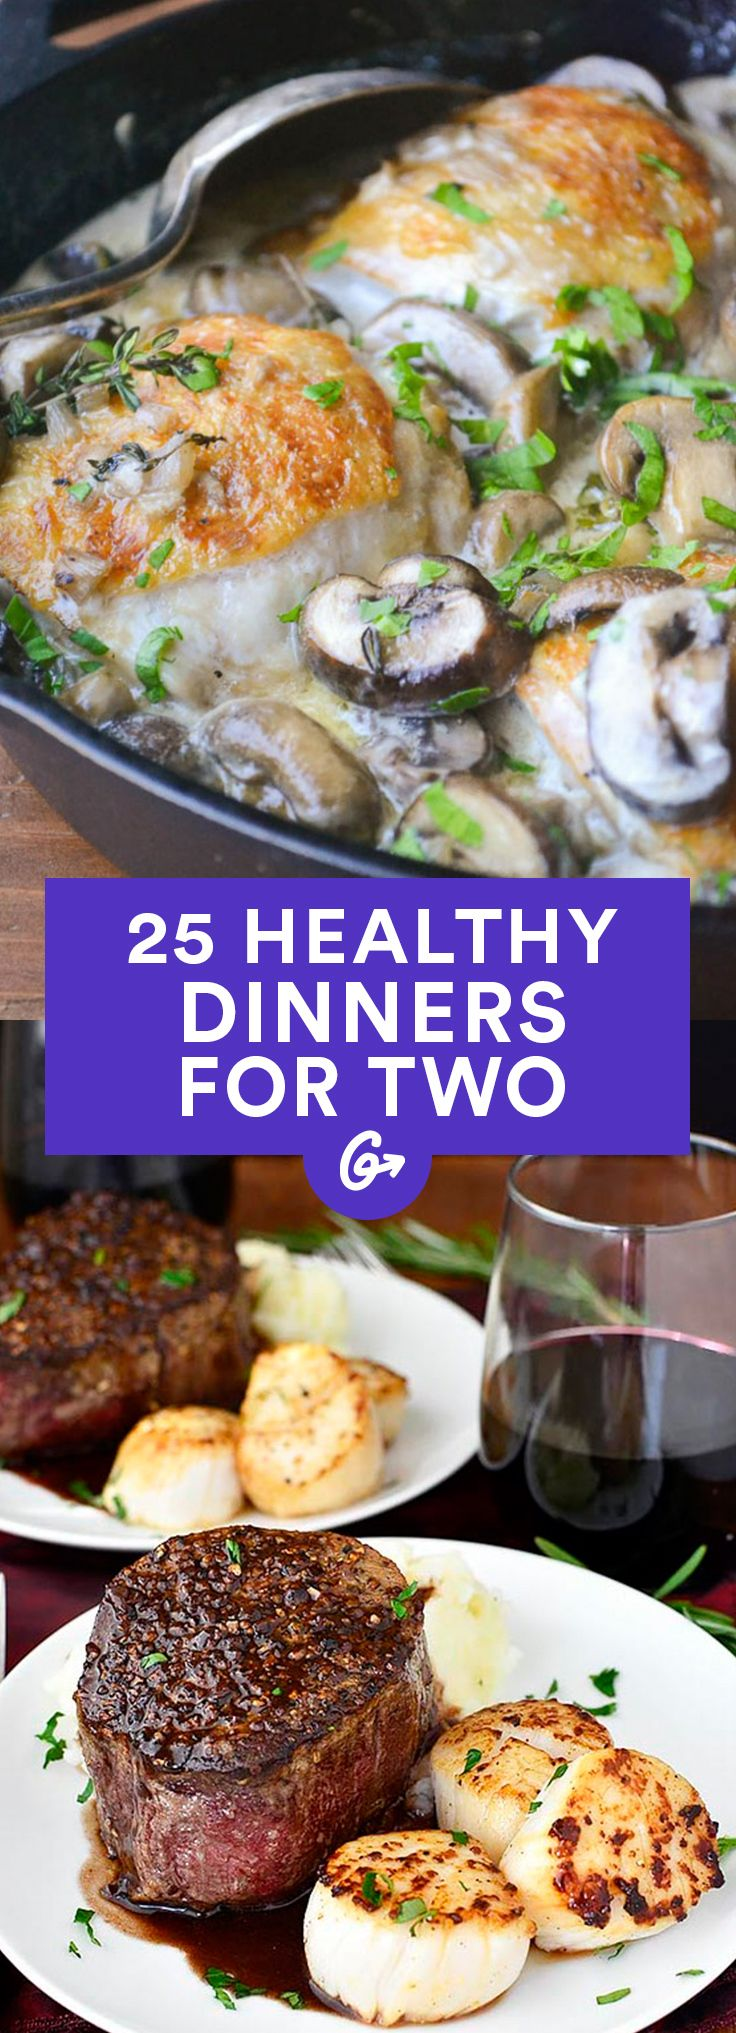 Diet Plan To Lose Weight 25 Healthy Dinner Recipes For Two